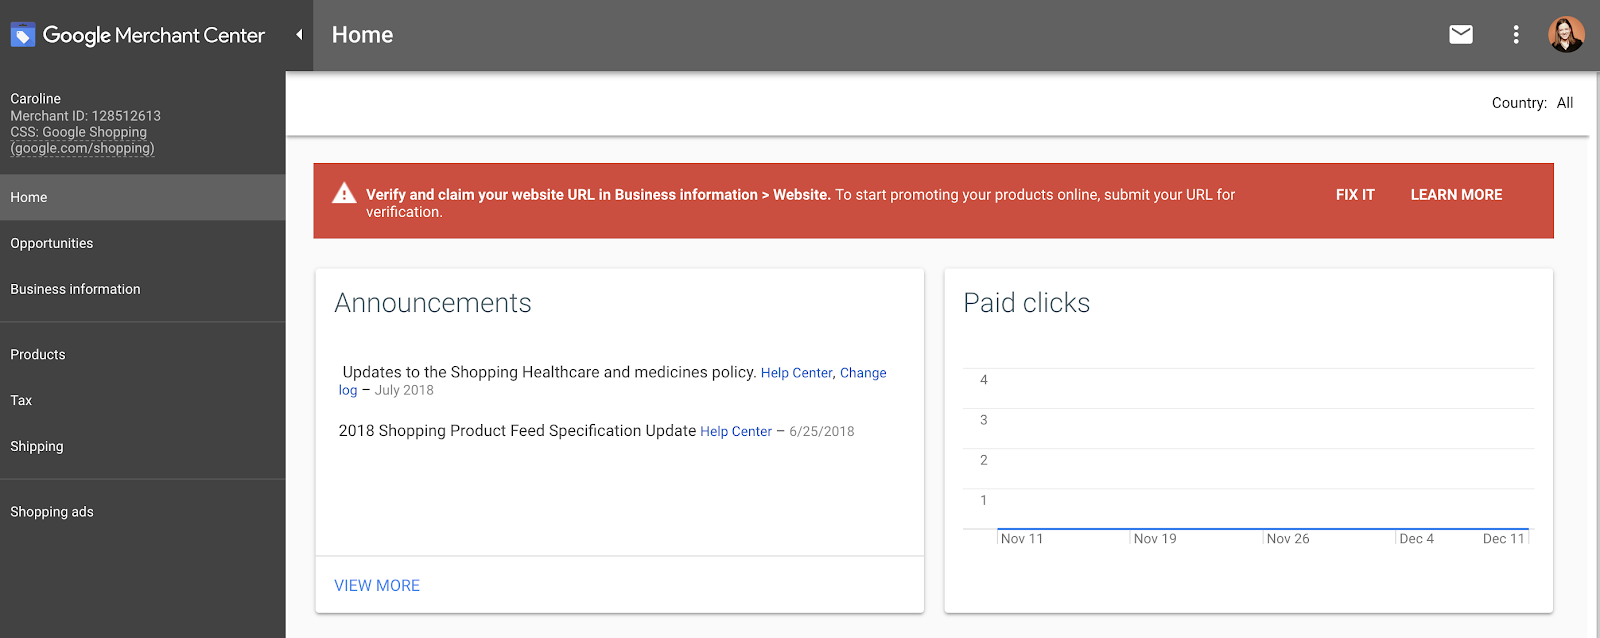 The Essential Introduction to Google Merchant Center